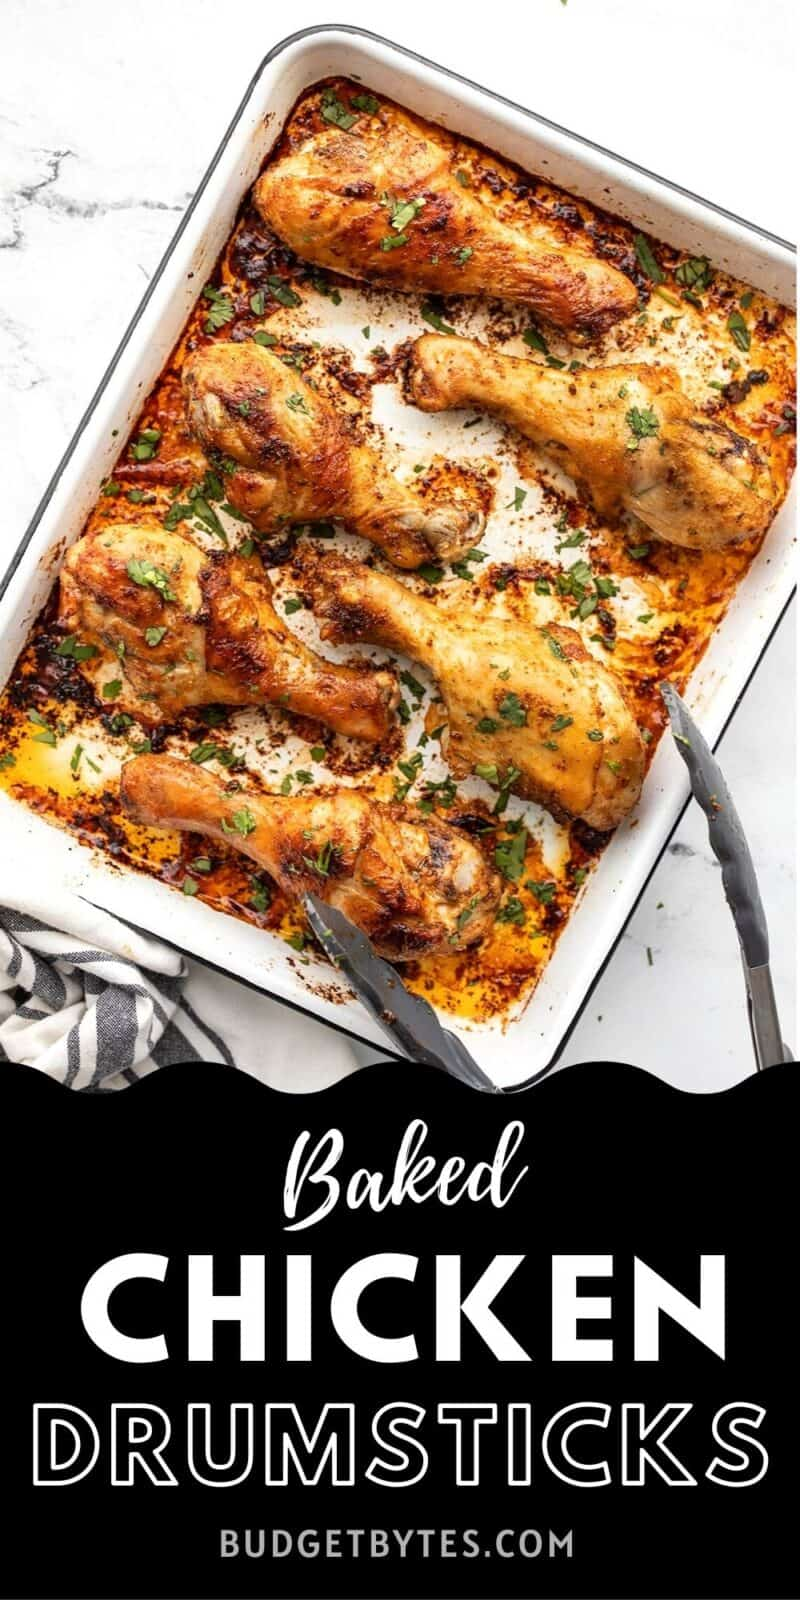 Baked chicken drumsticks on a baking sheet with tongs, title text at the bottom